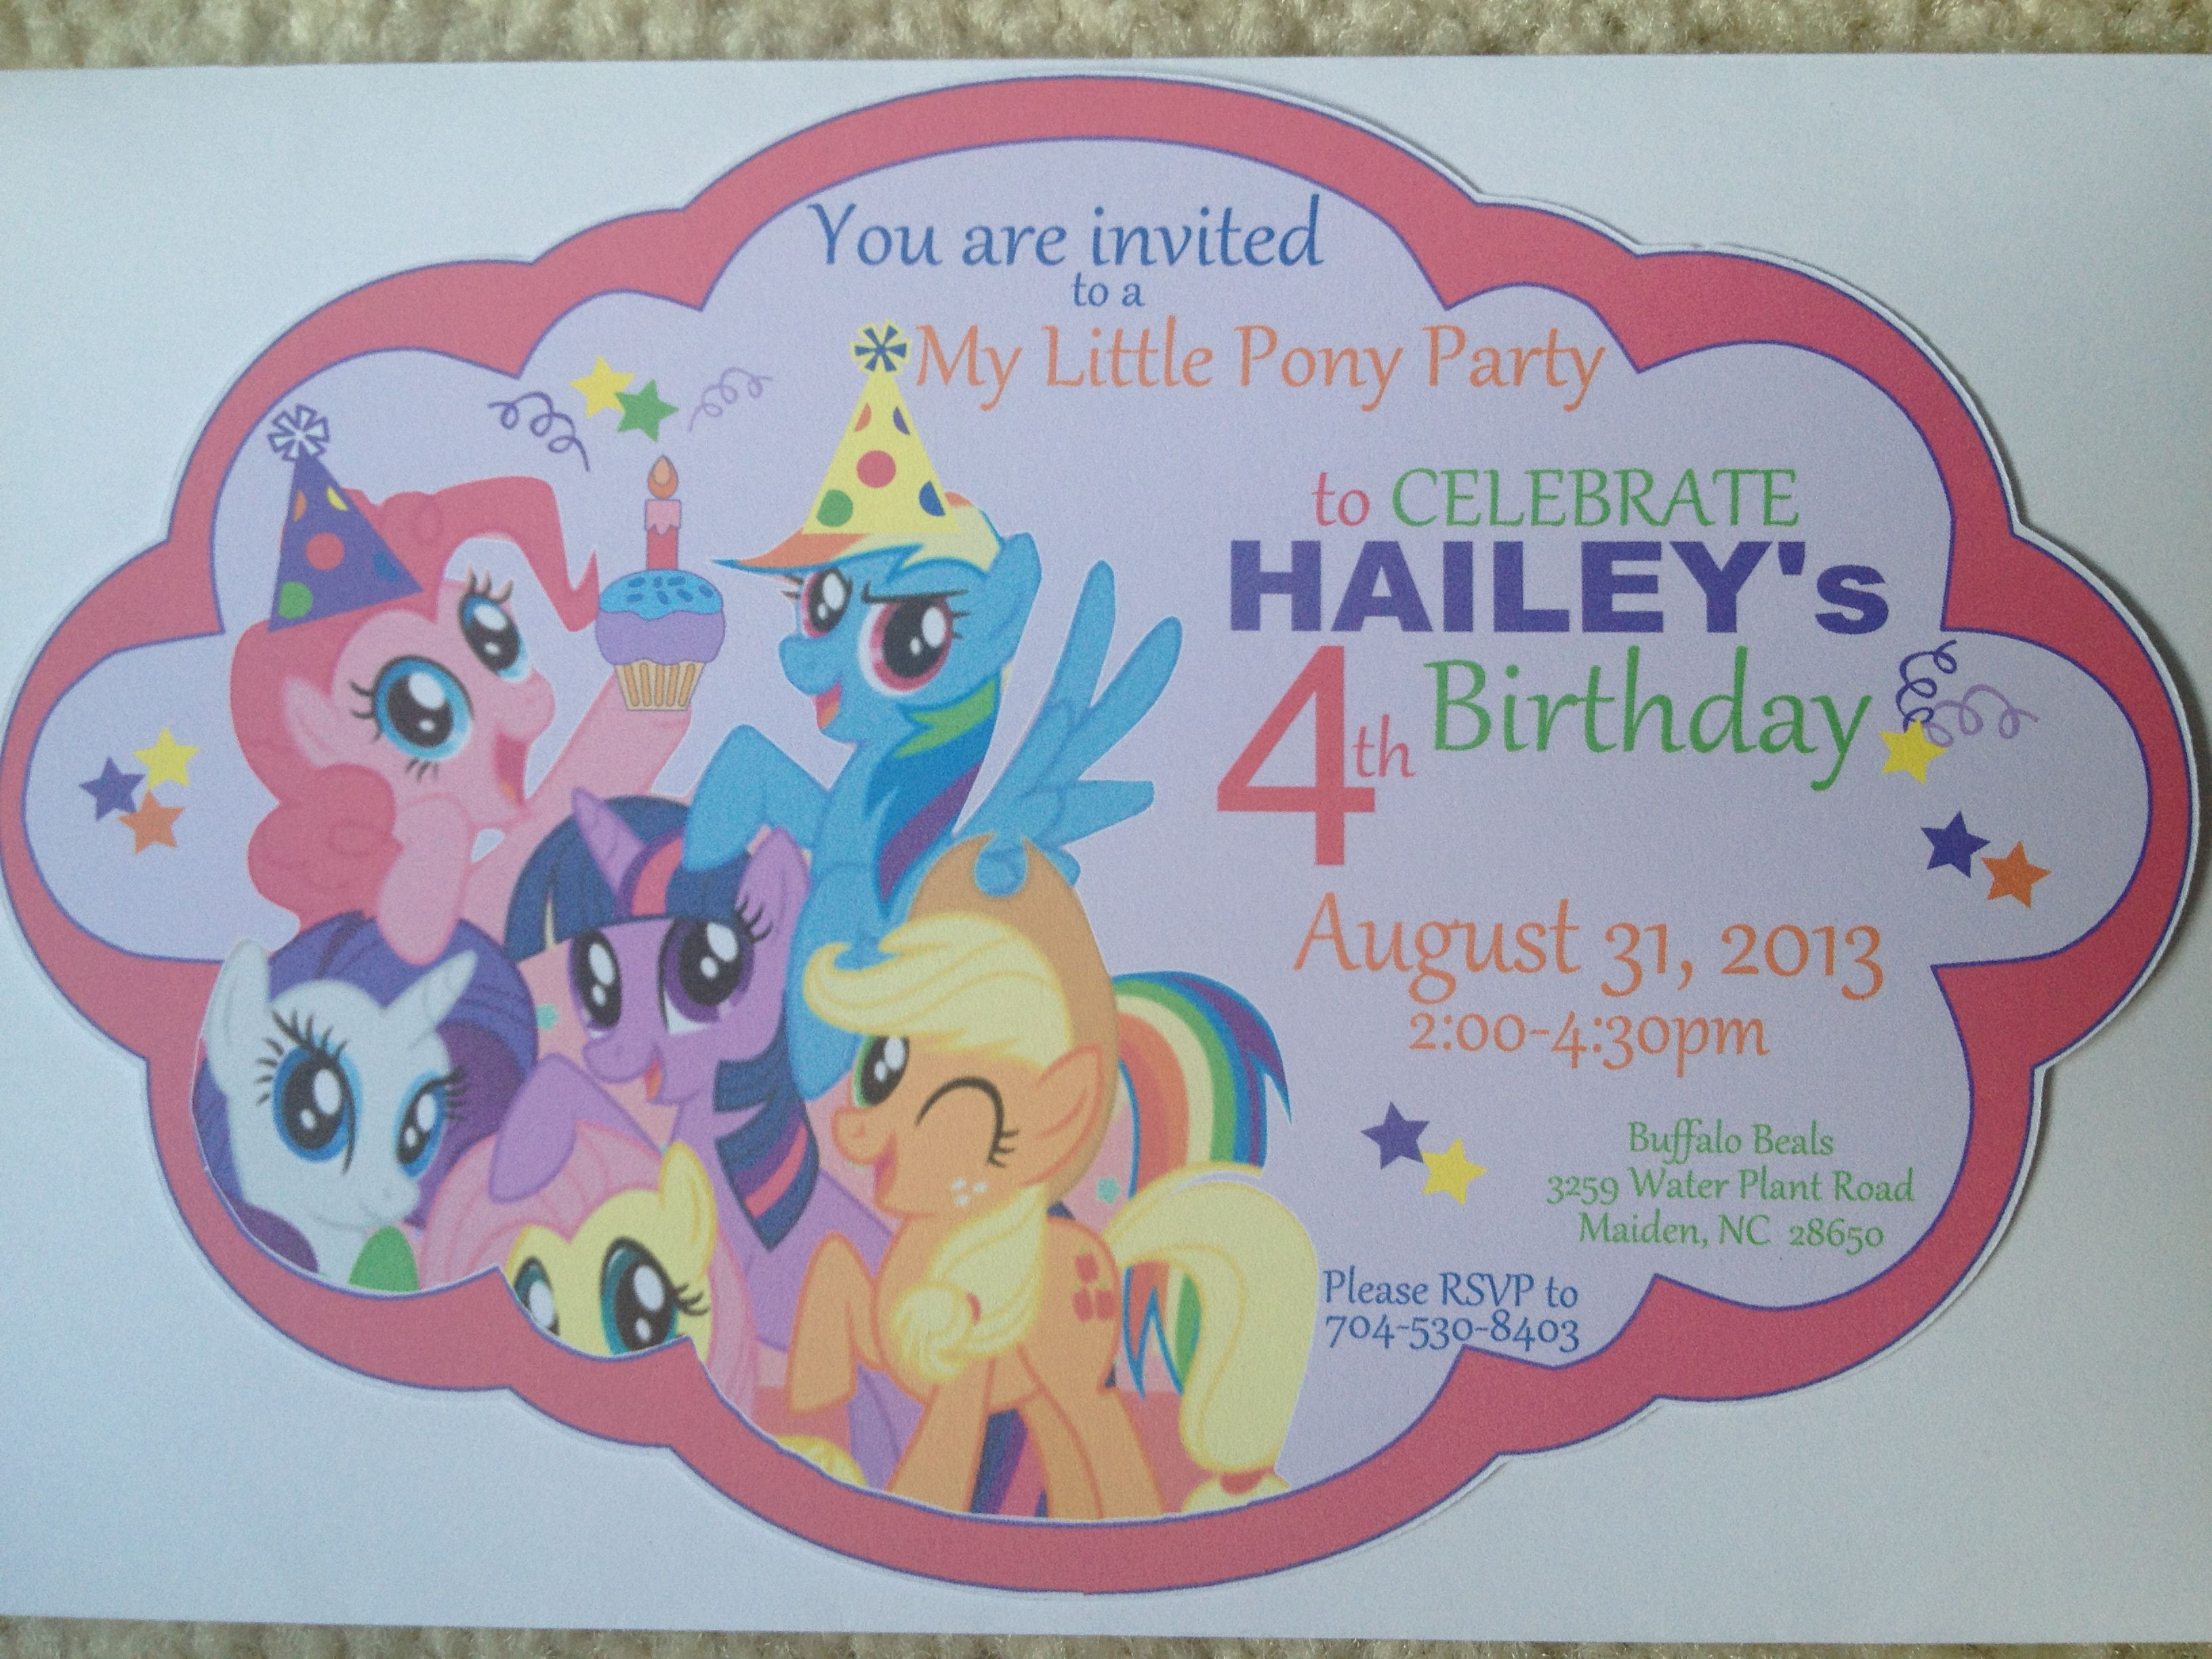 My little pony inspired invitations. Visit my page on Facebook - partywithstaci